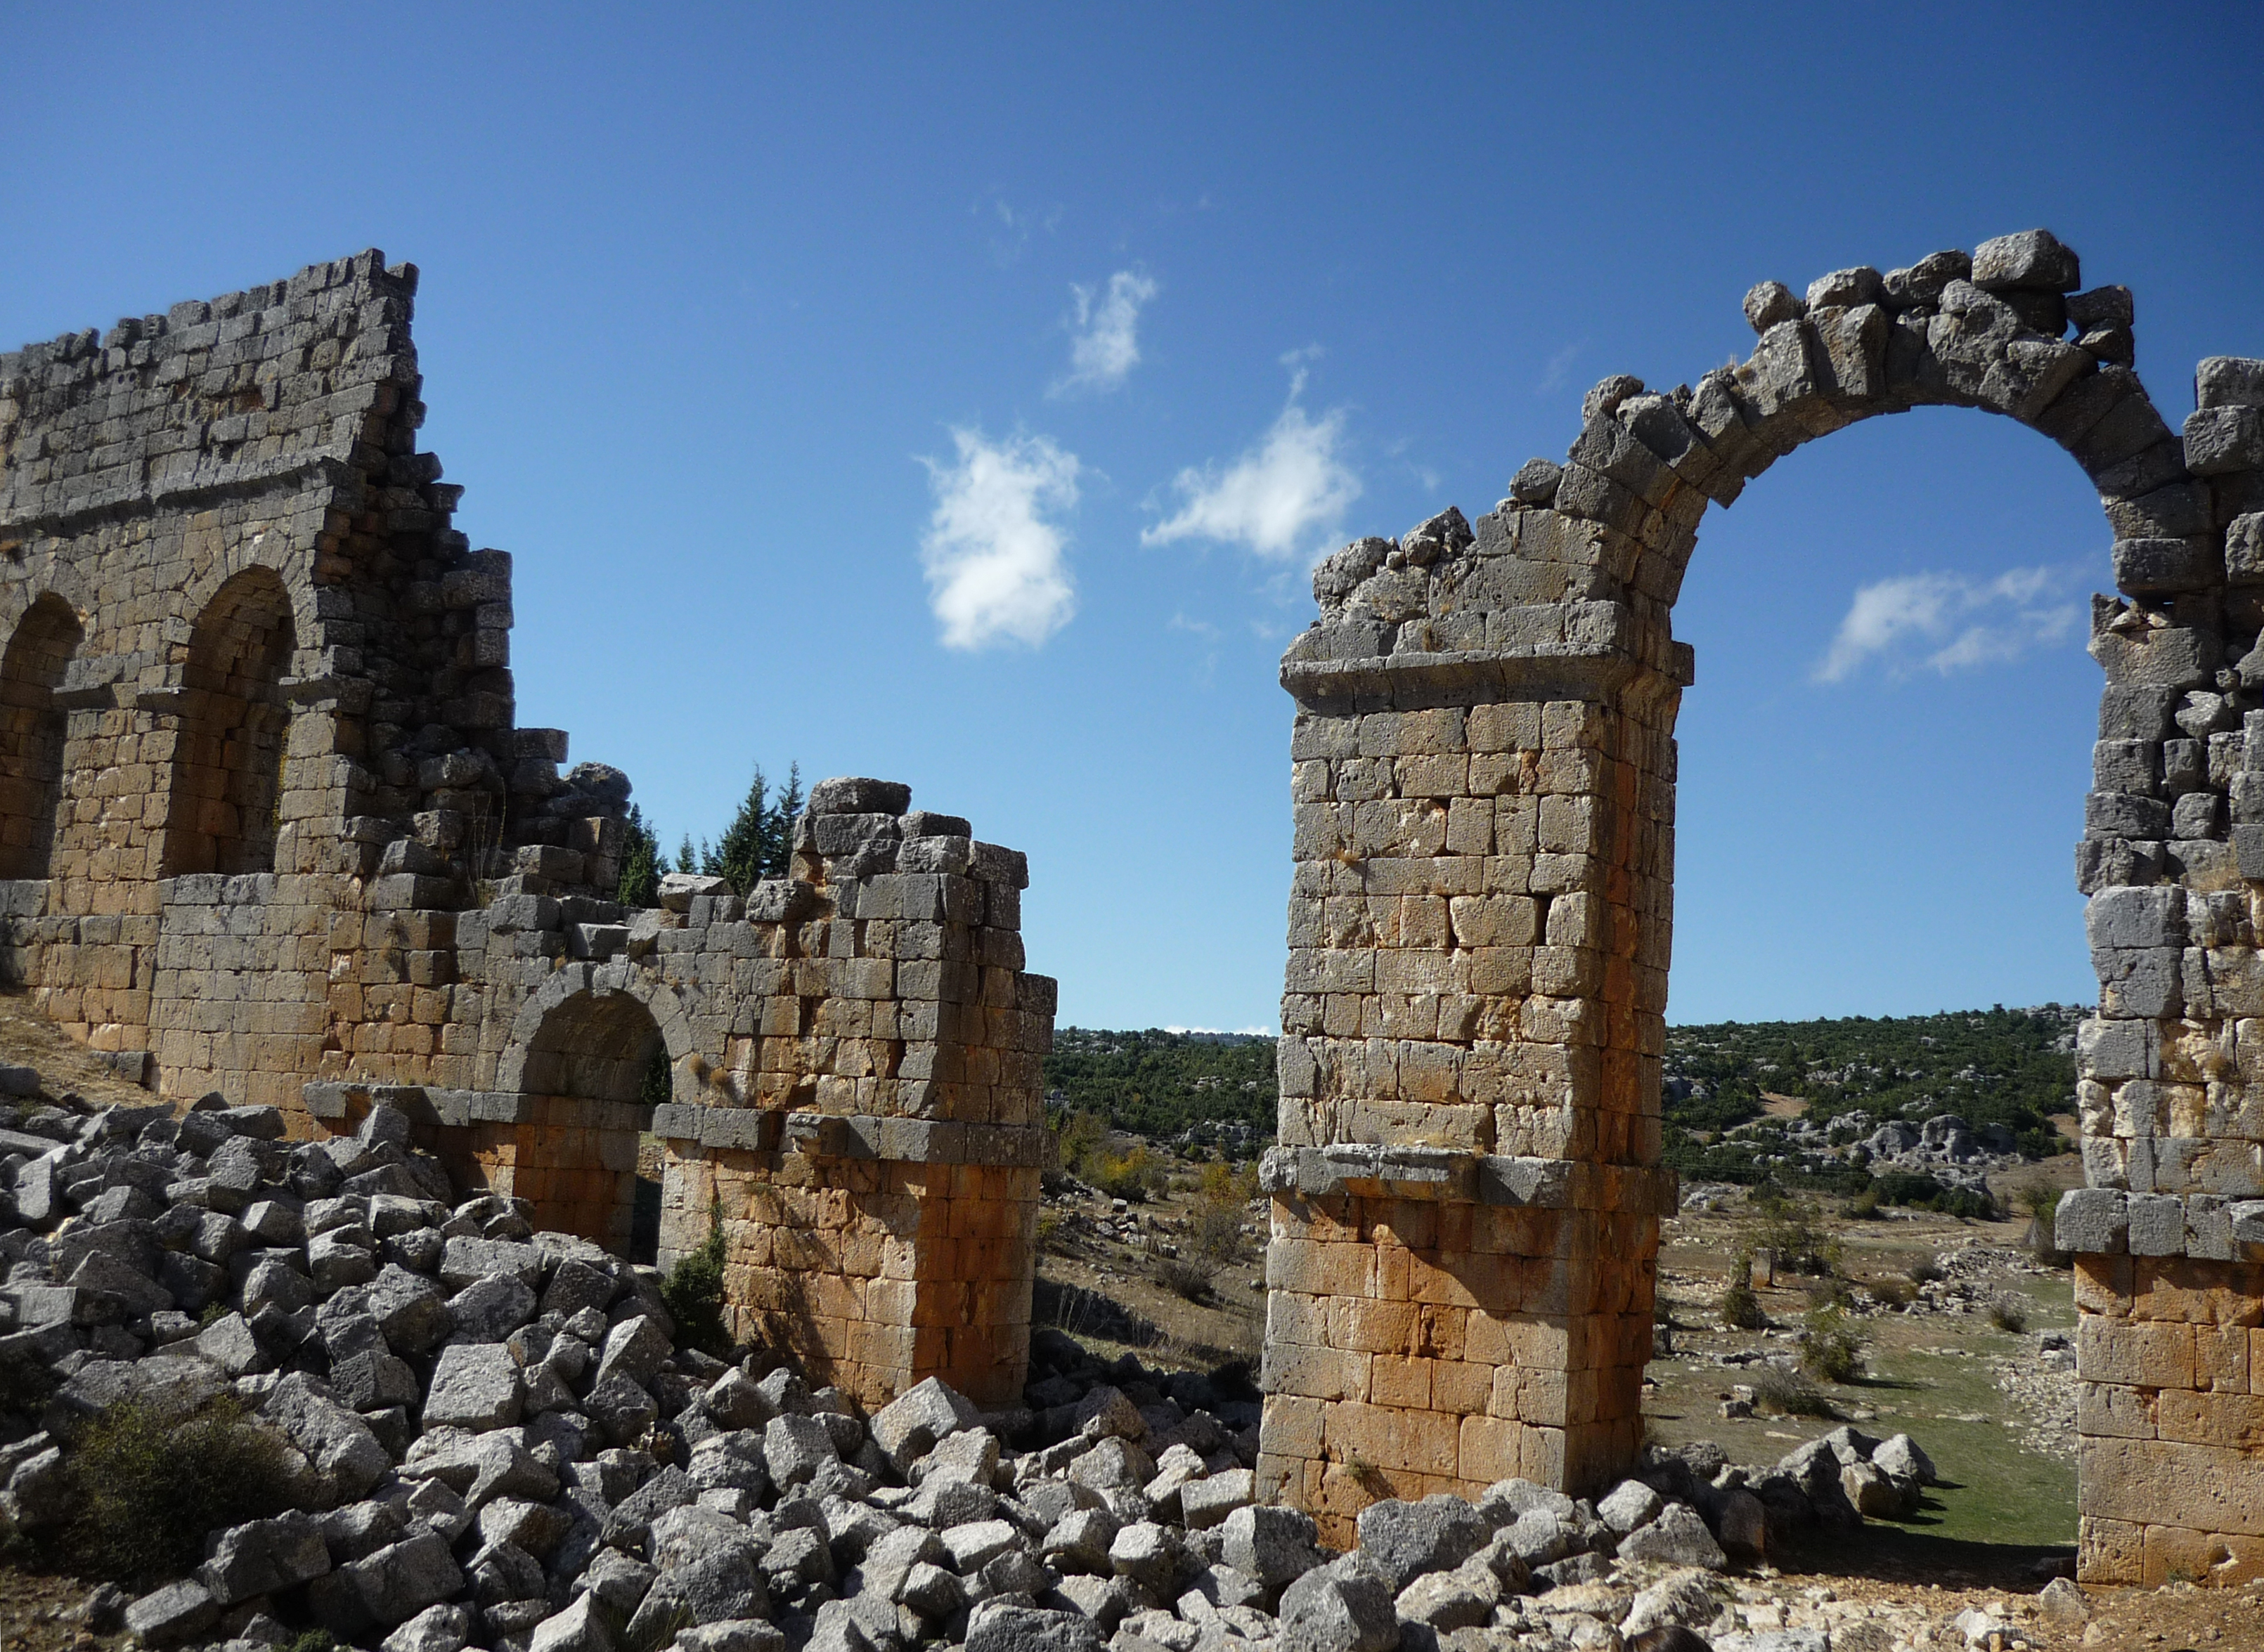 File:Olba ancient city Roman aqueduct.JPG